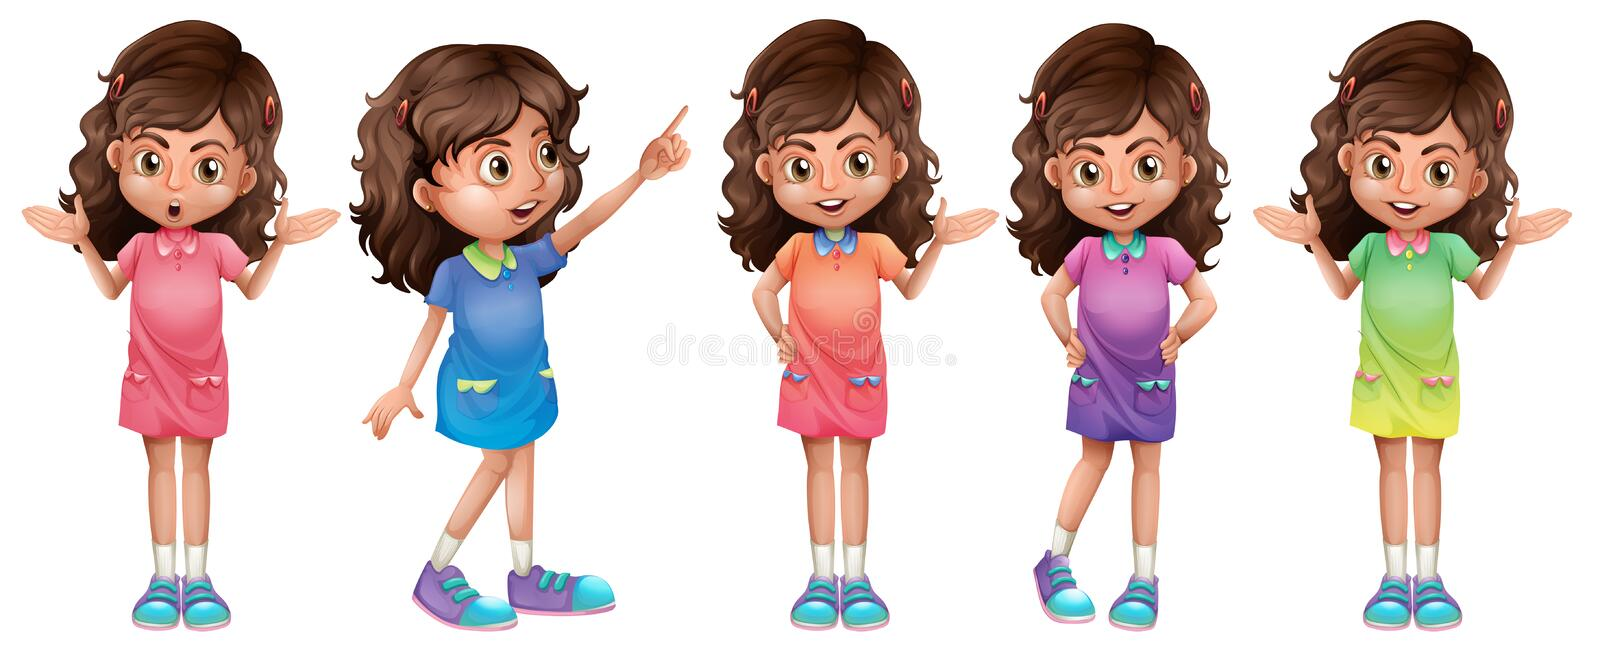 A character of a young girl vector illustration